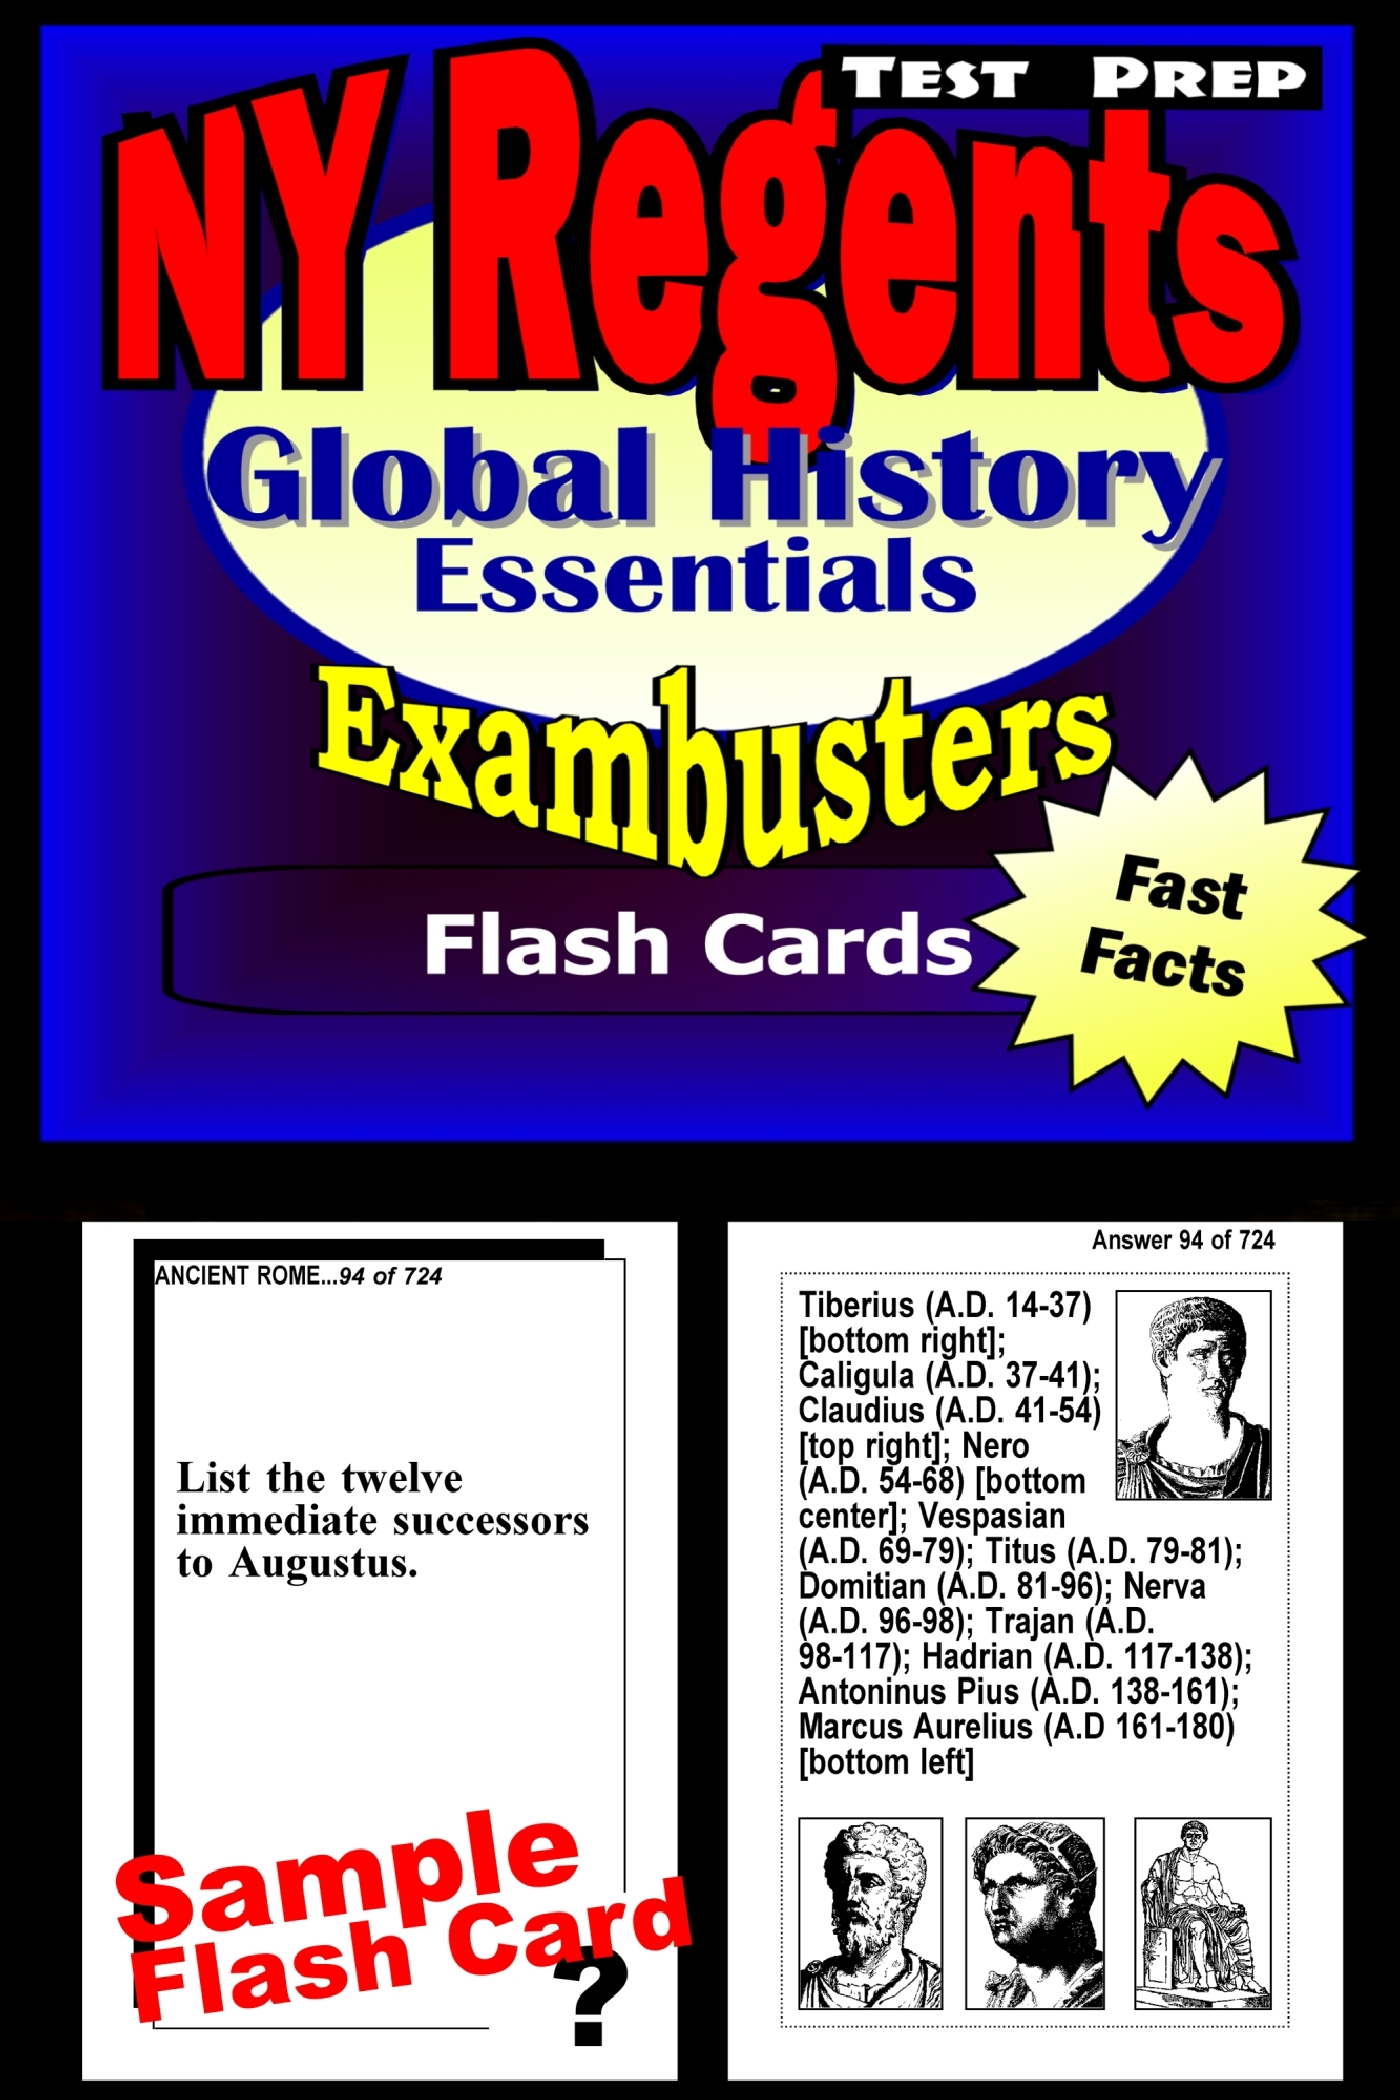 NY Regents Global History Test Prep Review--Exambusters Flashcards: New York Regents Exam Study Guide